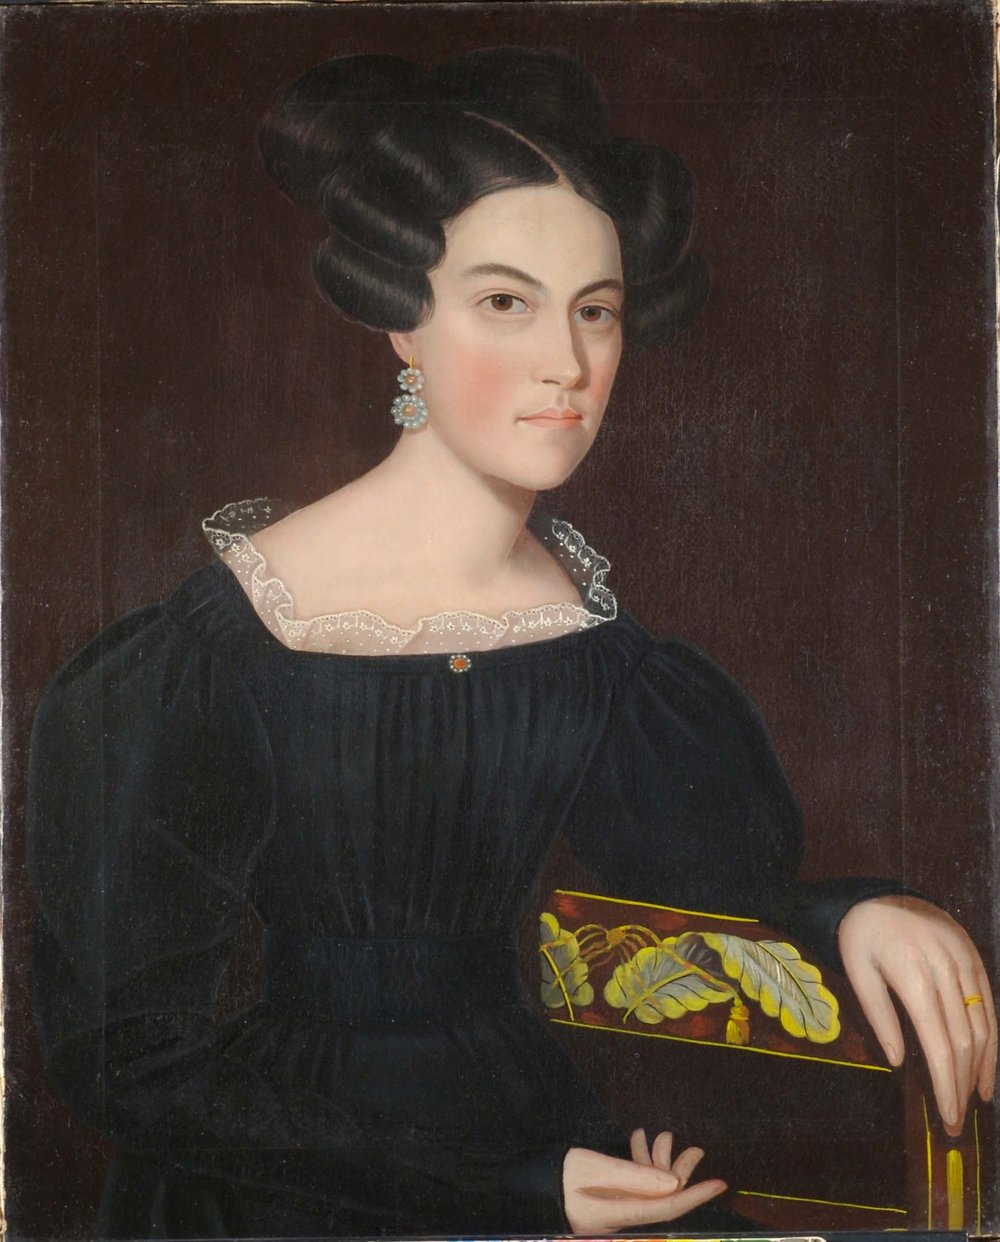 Ammi Phillips,  Portrait Of A Lady,  c. 1835, oil on canvas, 38h x 30w x 4d in.